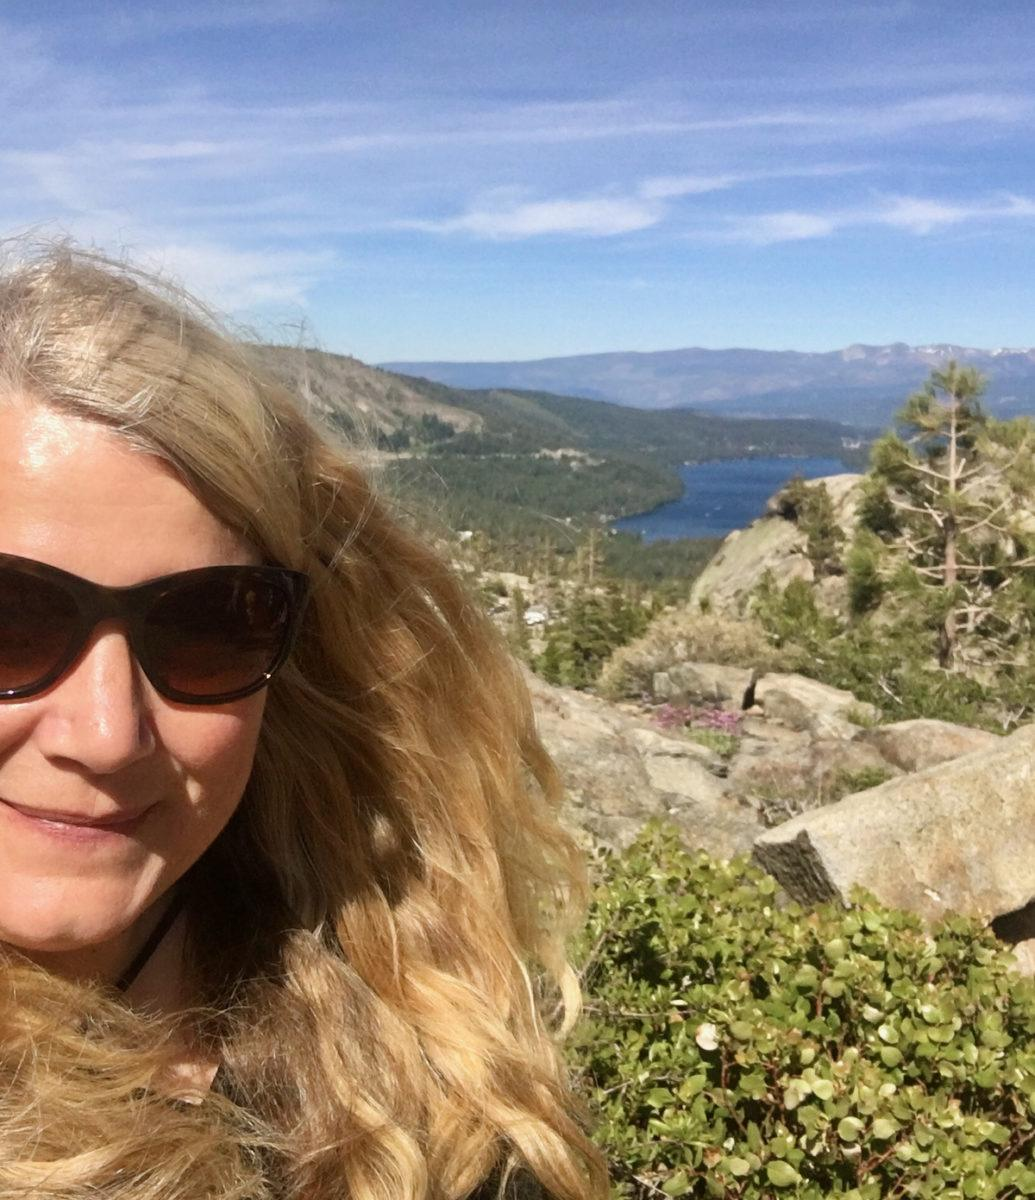 Julia Overlooks Donner Pass and the site for the passage of the First Transcontinental Railroad.